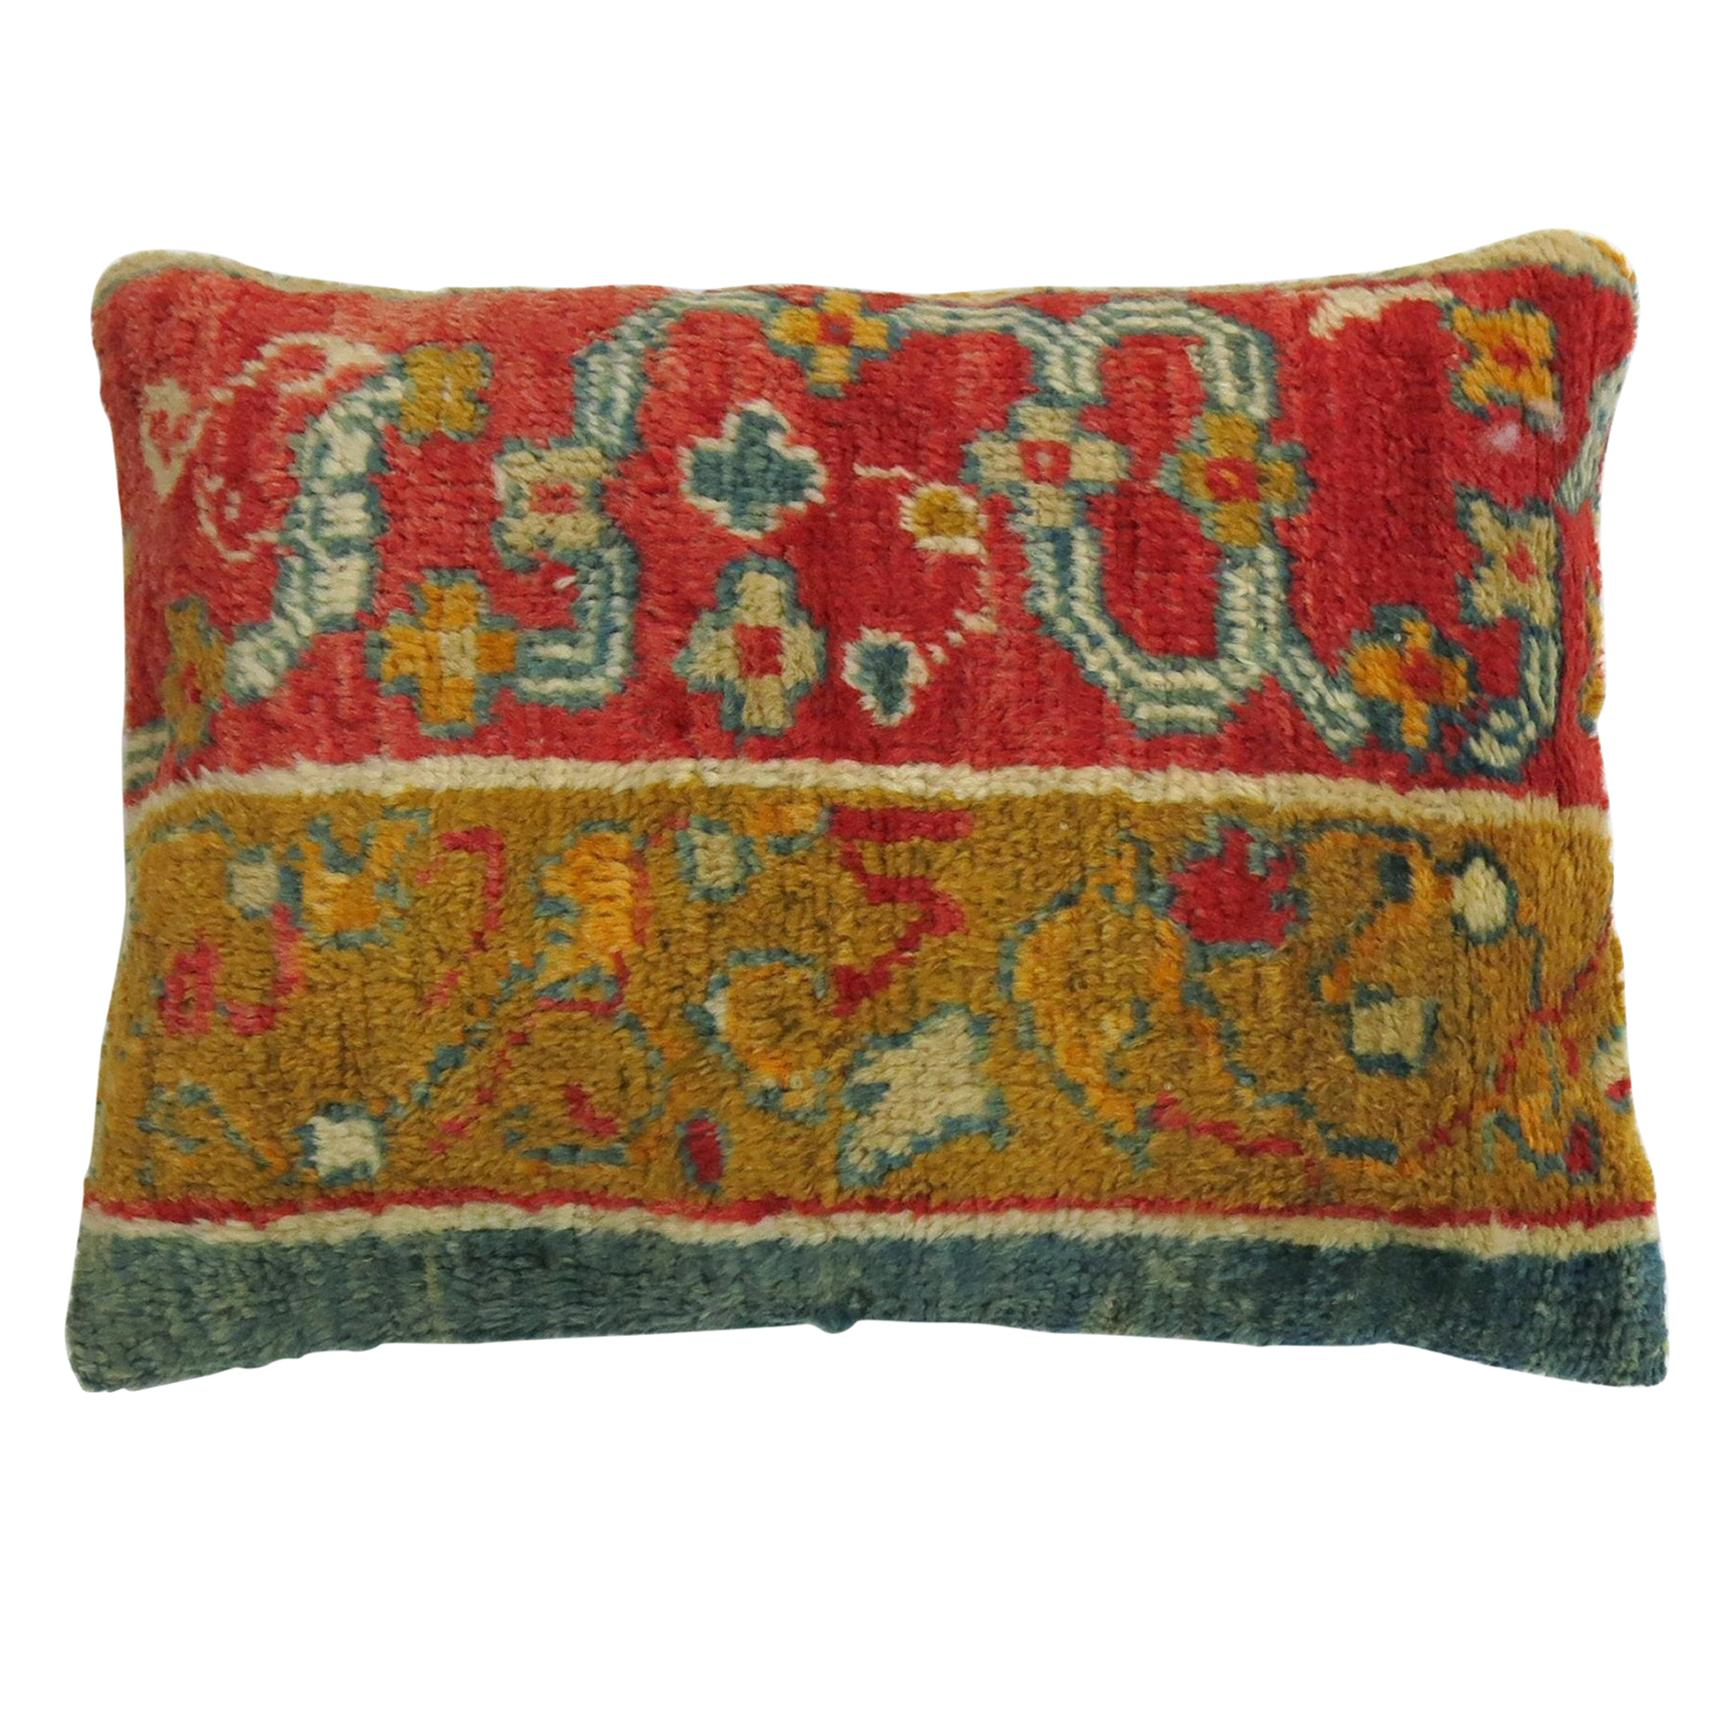 Coral Teal Early 20th Century Wool Antique Oushak Border Rug Pillow